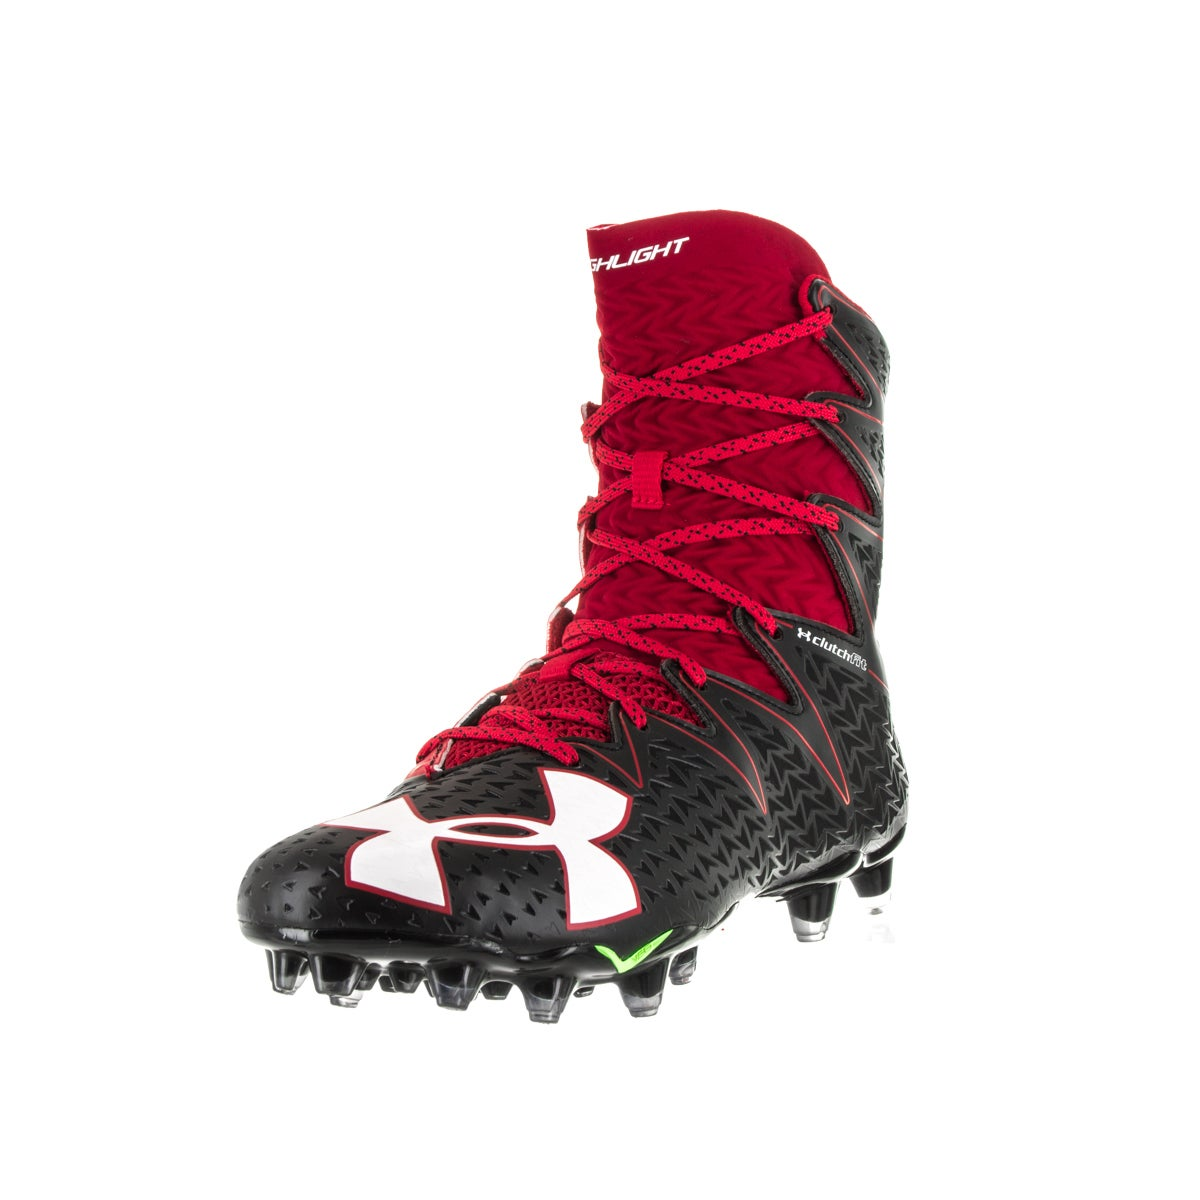 f410130e5 Shop Under Armour Men's UA Highlight MC Red Football Cleat - Free Shipping  Today - Overstock - 13404568